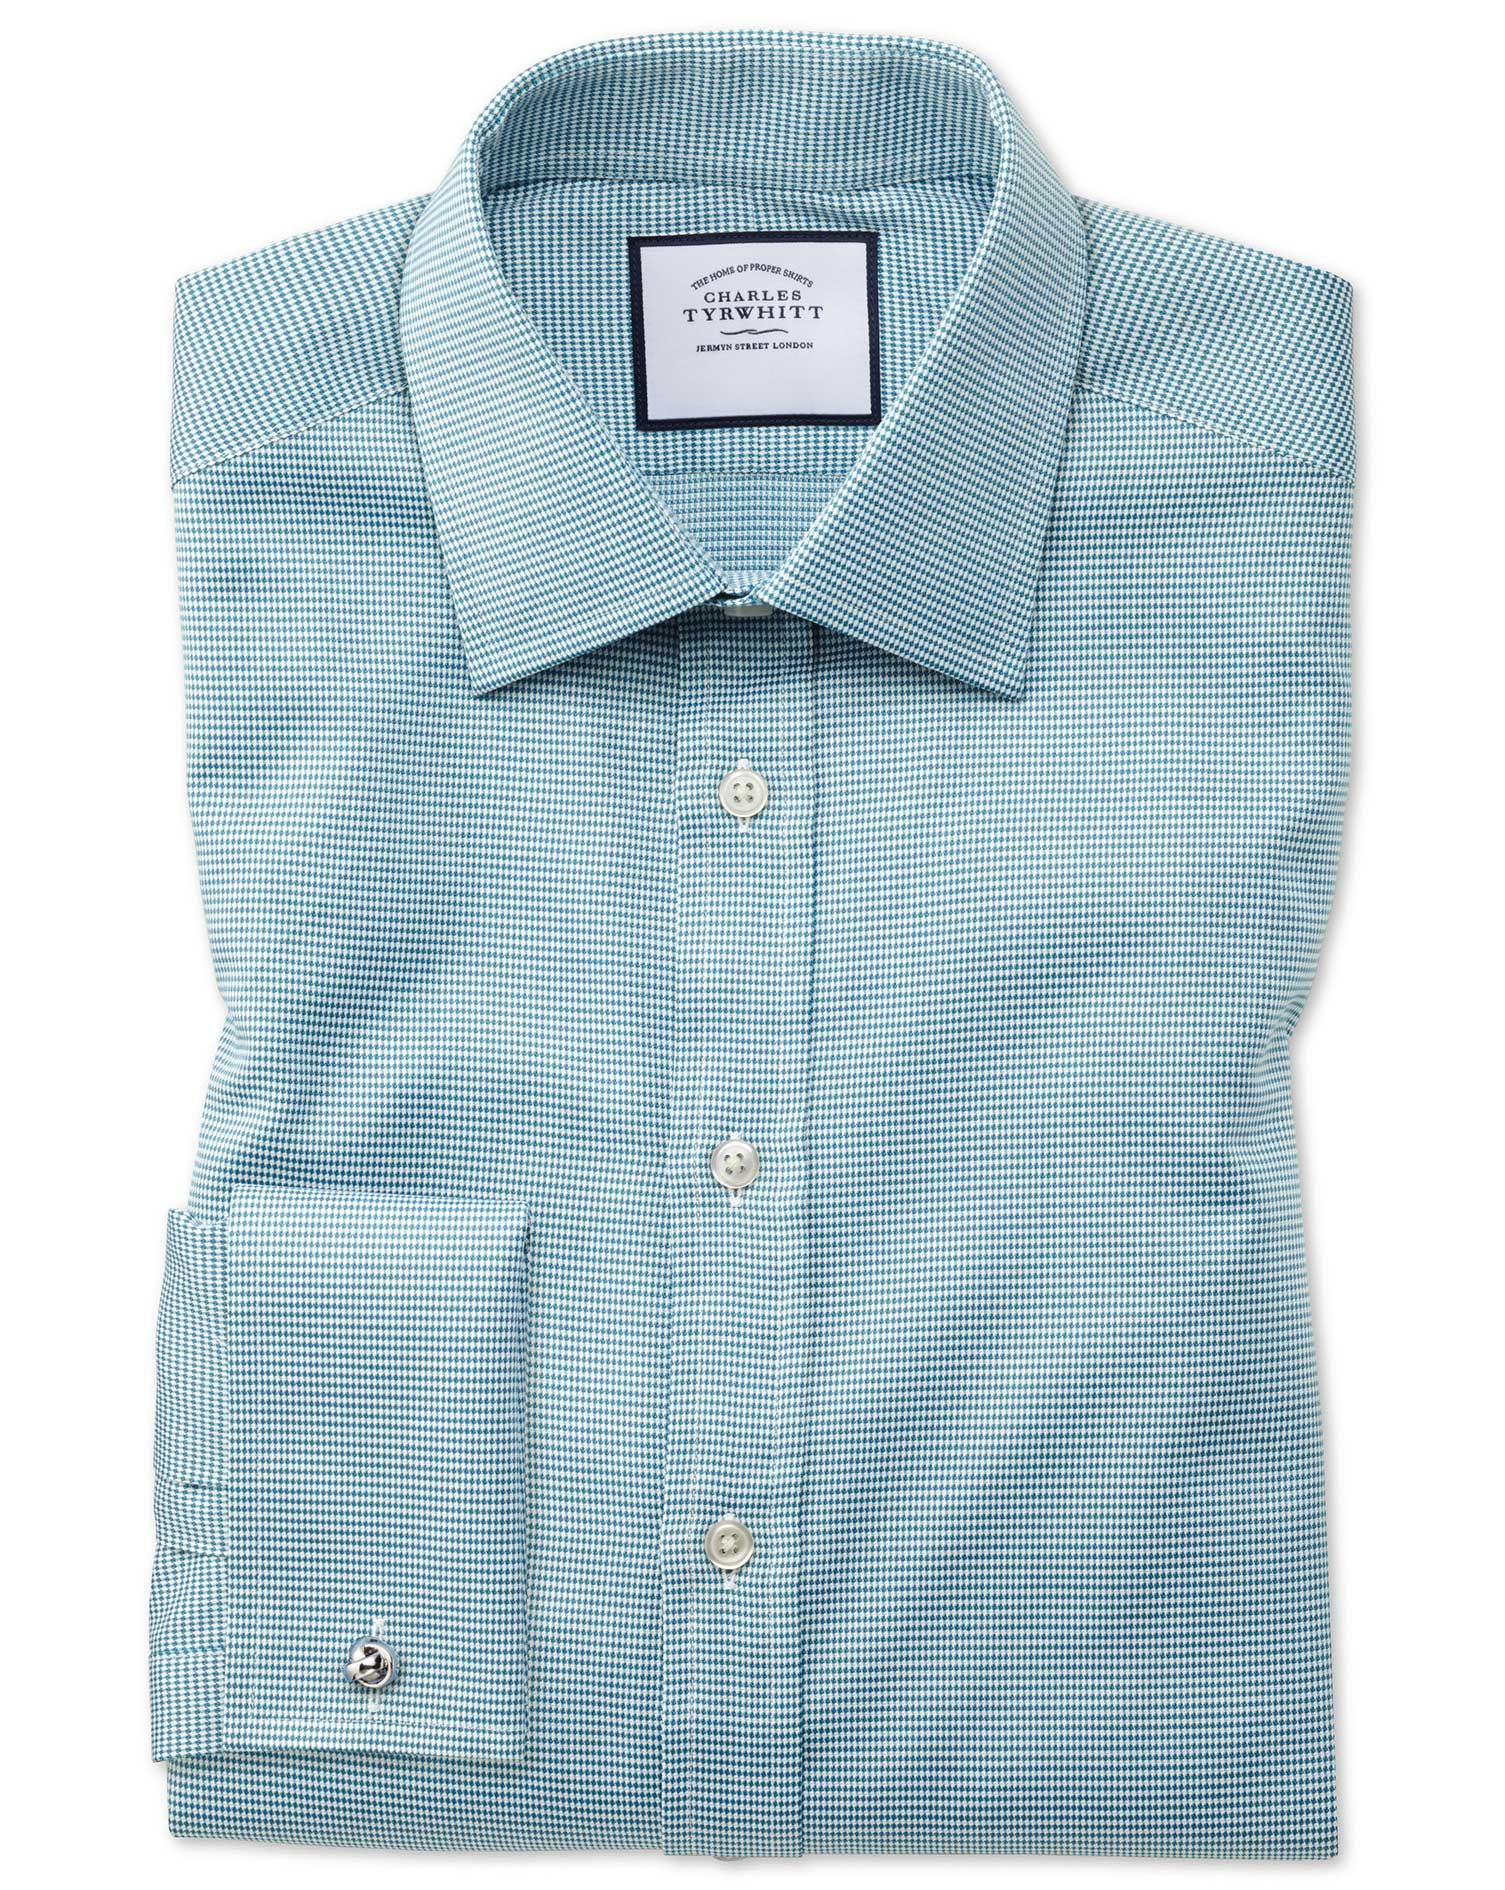 Classic Fit Teal Small Puppytooth Egyptian Cotton Formal Shirt Single Cuff Size 17.5/34 by Charles T